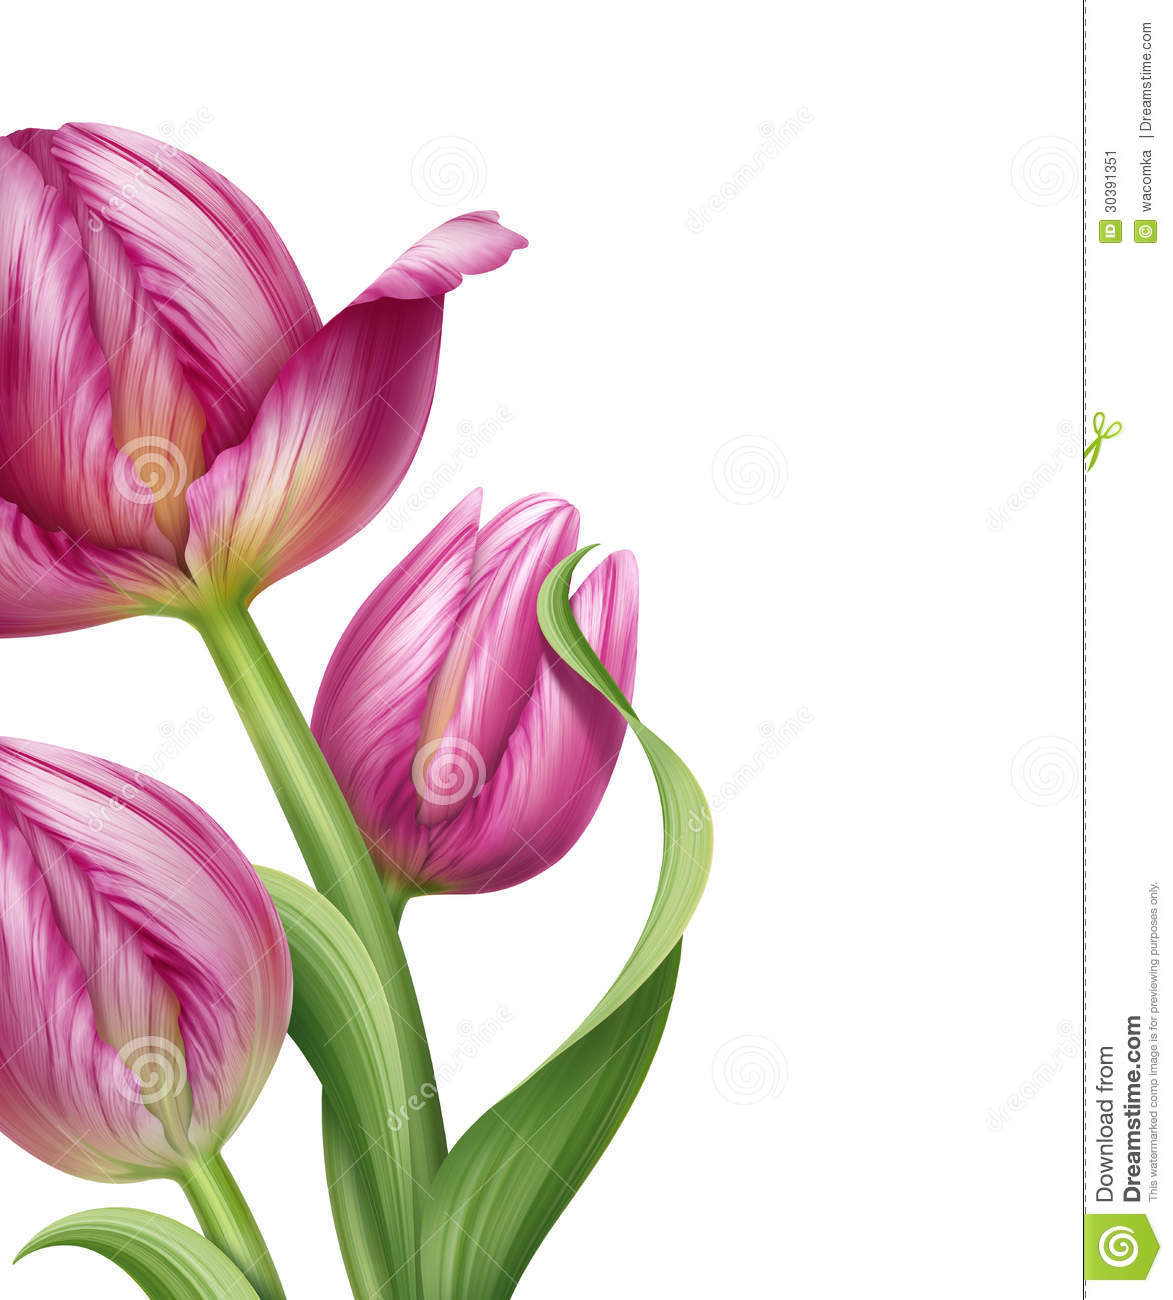 Beautiful Realistic Pink Tulips Flower Illustration Stock ...